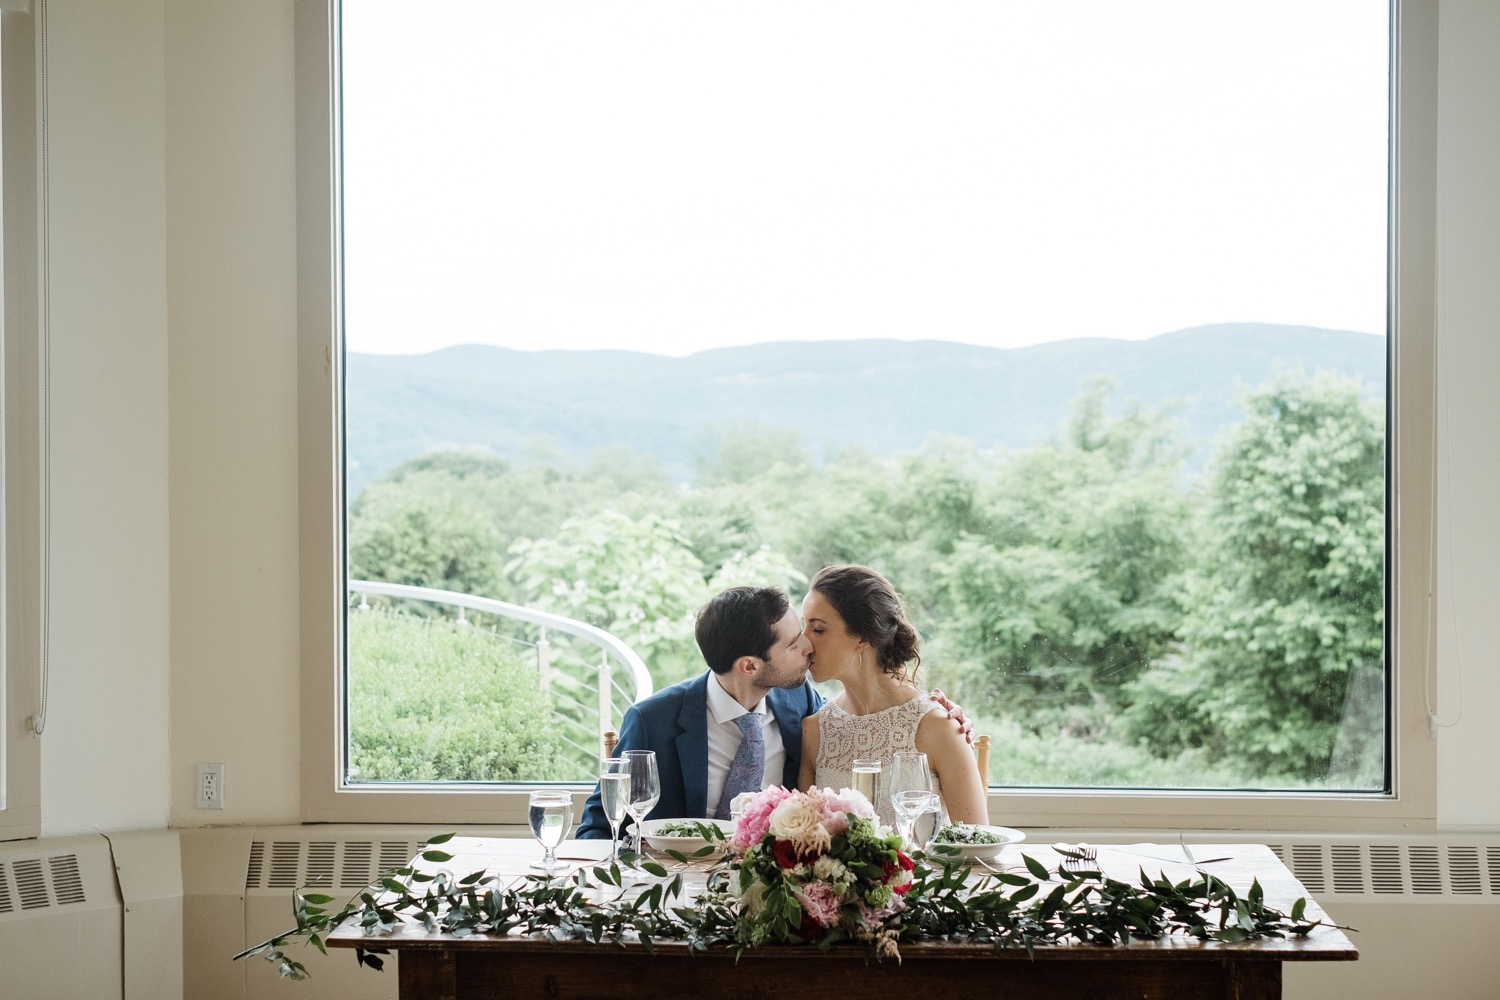 The Garrison Wedding, The Garrison venue, Hudson Valley wedding, hudson valley wedding photographer, catskills wedding photographer, the garrison wedding photos, best catskills wedding photographer, wedding photo inspo, wedding moment inspiration,